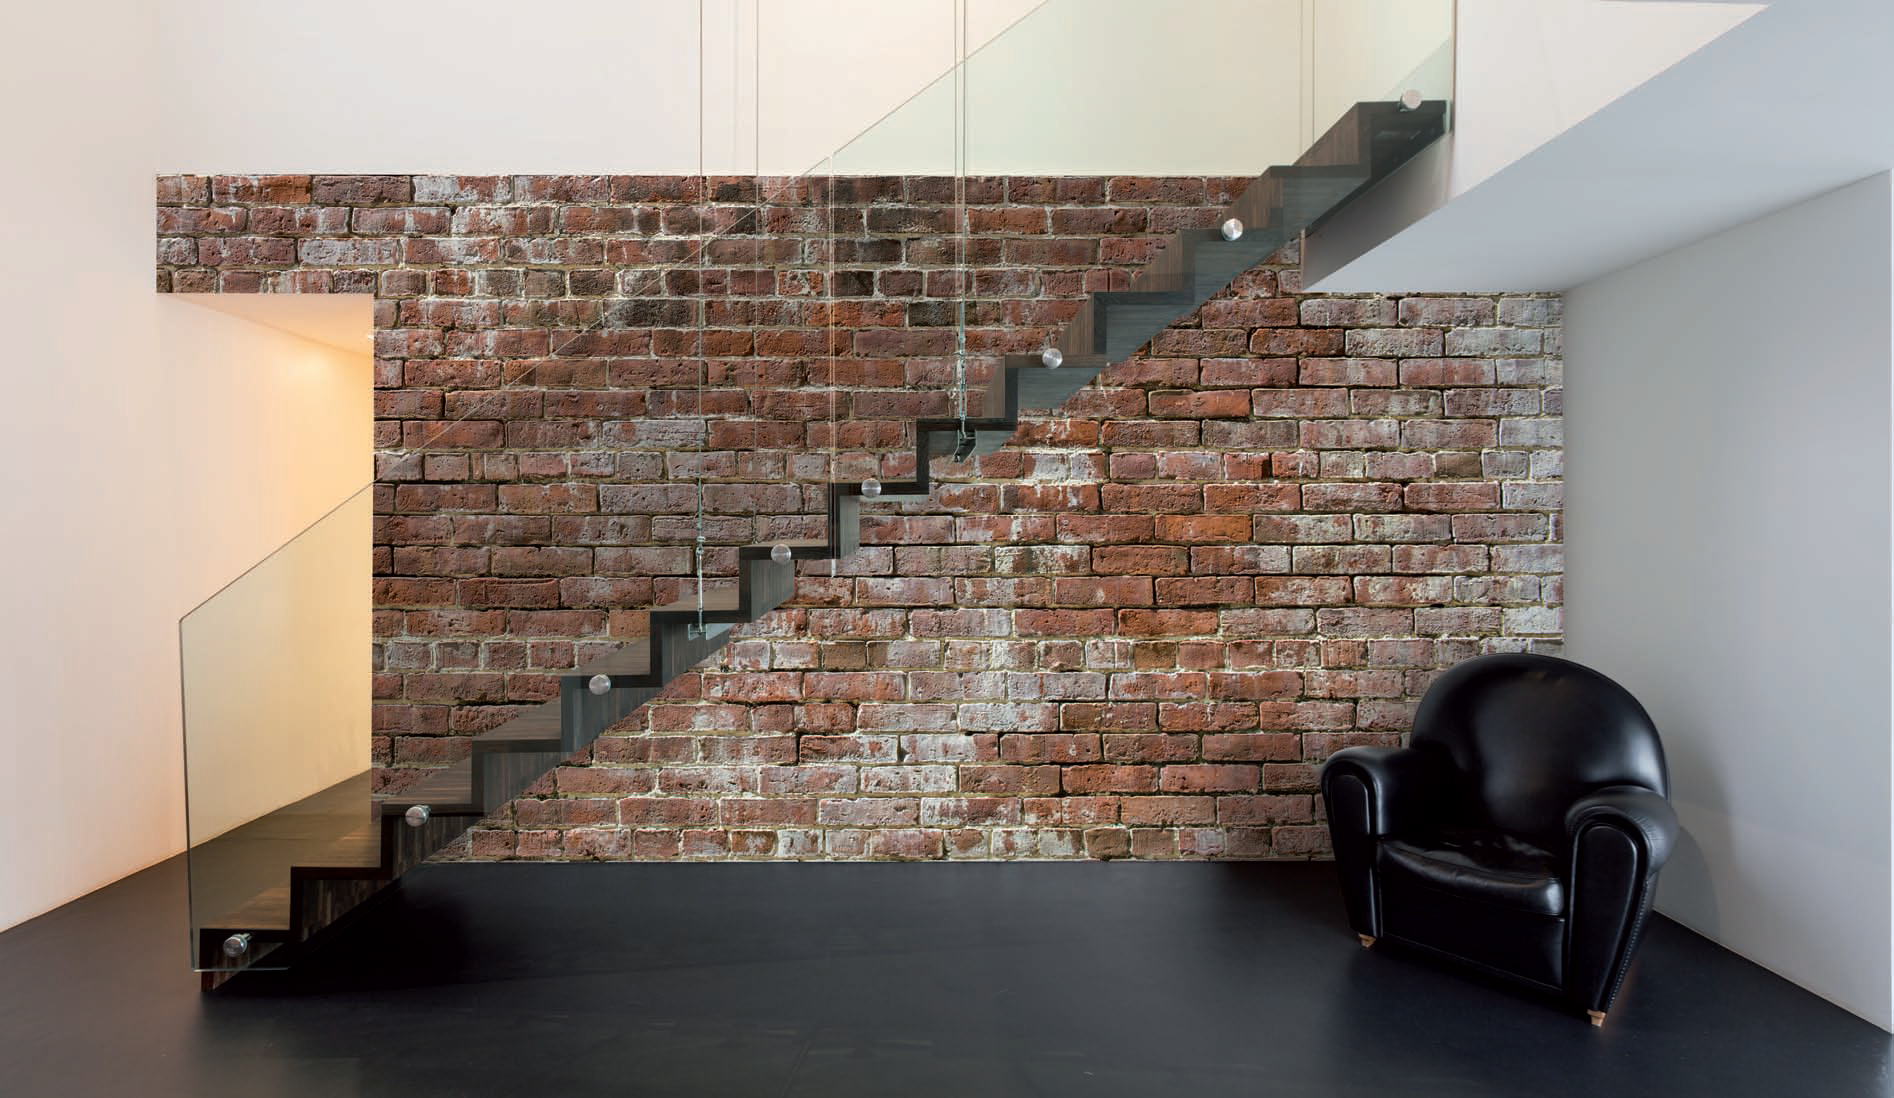 Brick Wallpaper Interior Design photo - 8